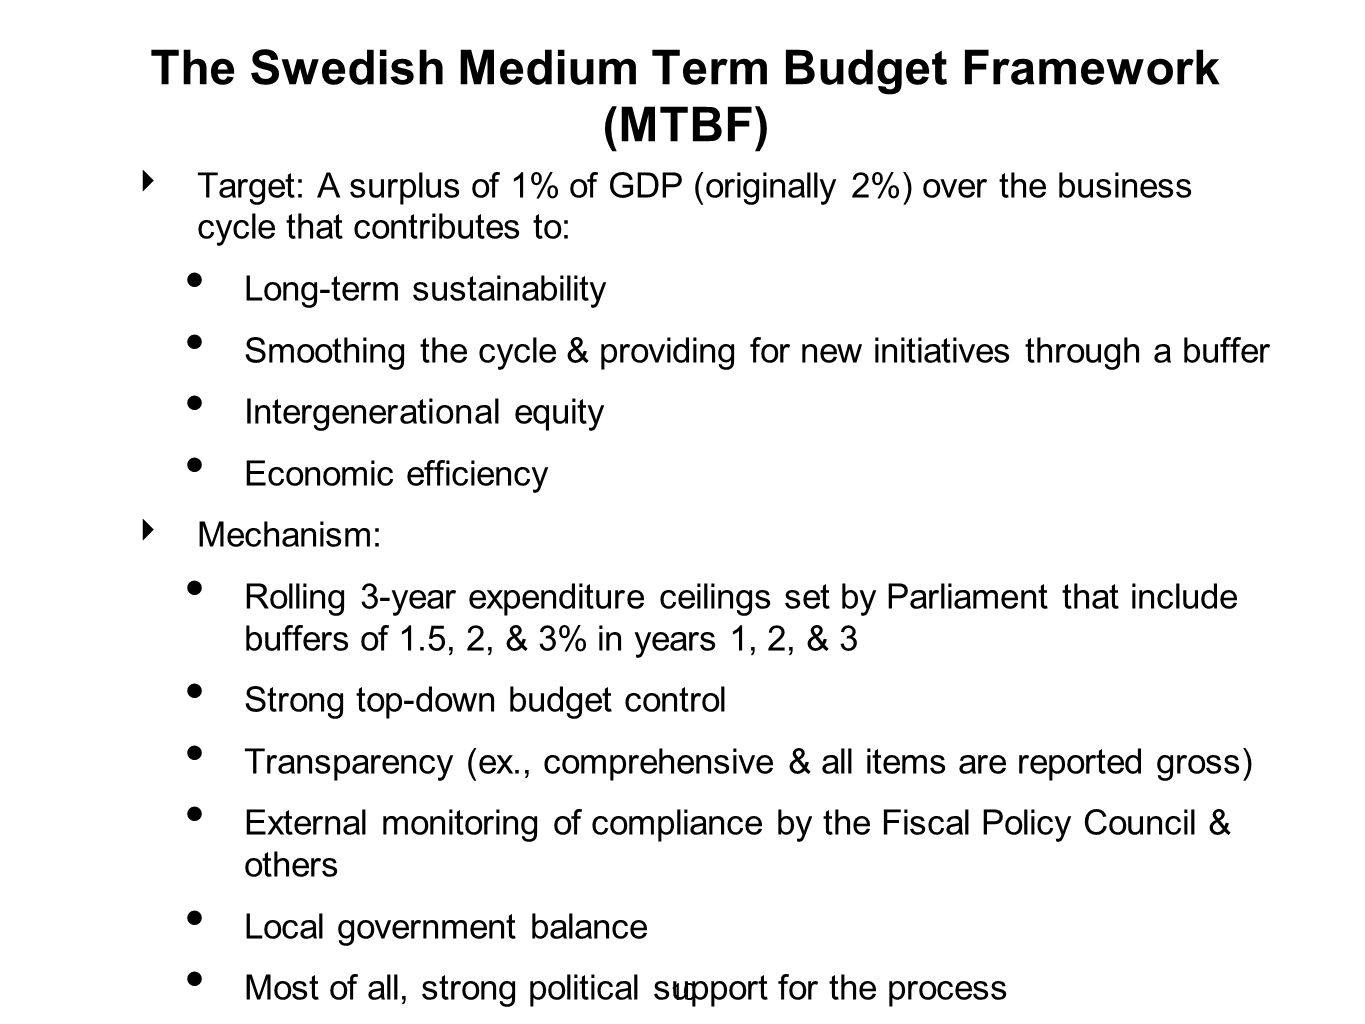 The Swedish Medium Term Budget Framework (MTBF)